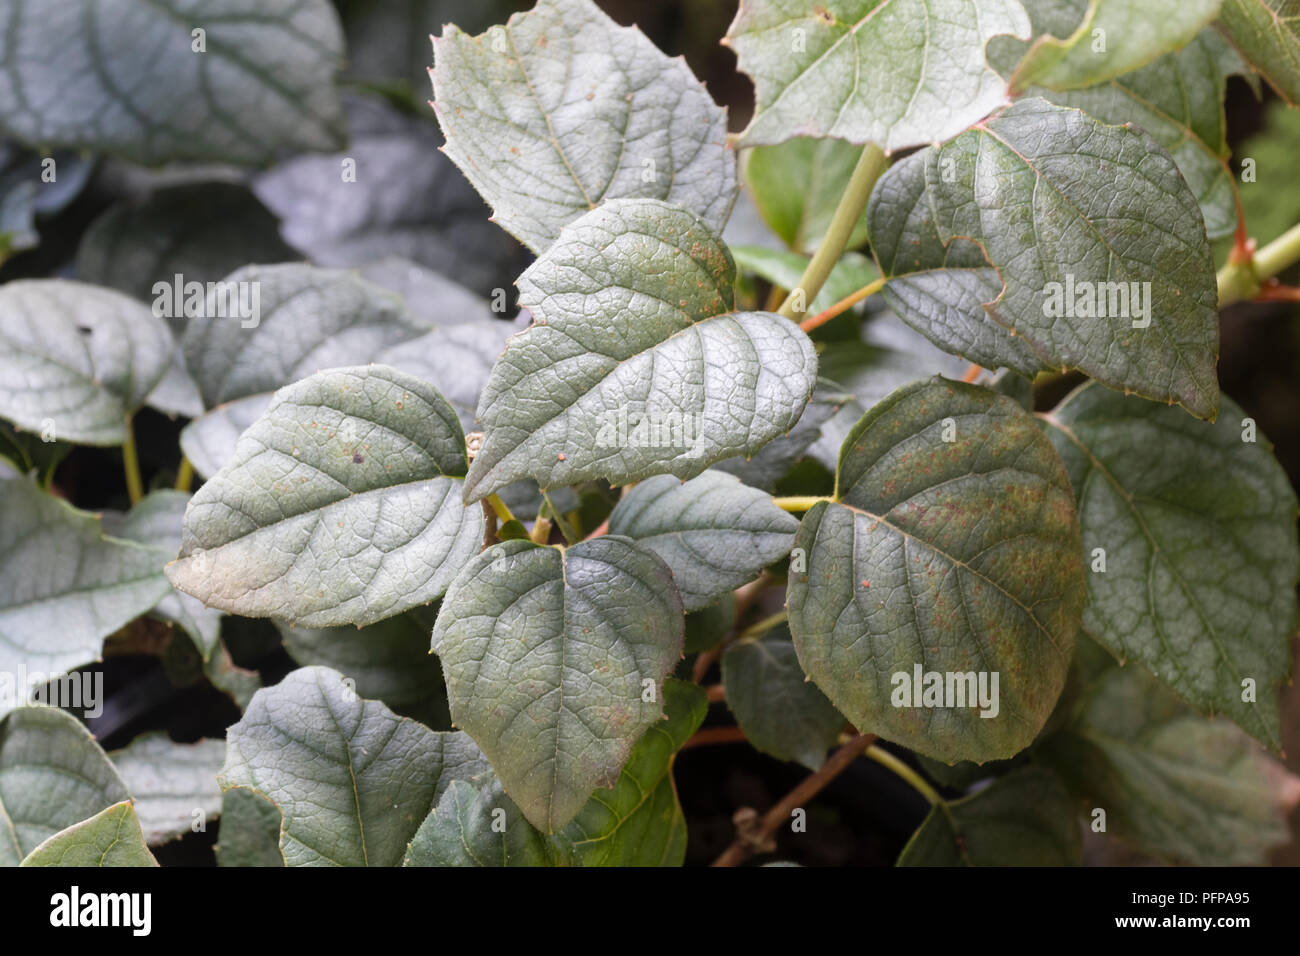 Silvery deciduous foliage of the self clinging hardy climber, Schizophragma hydrangeoides 'Moonlight' - Stock Image